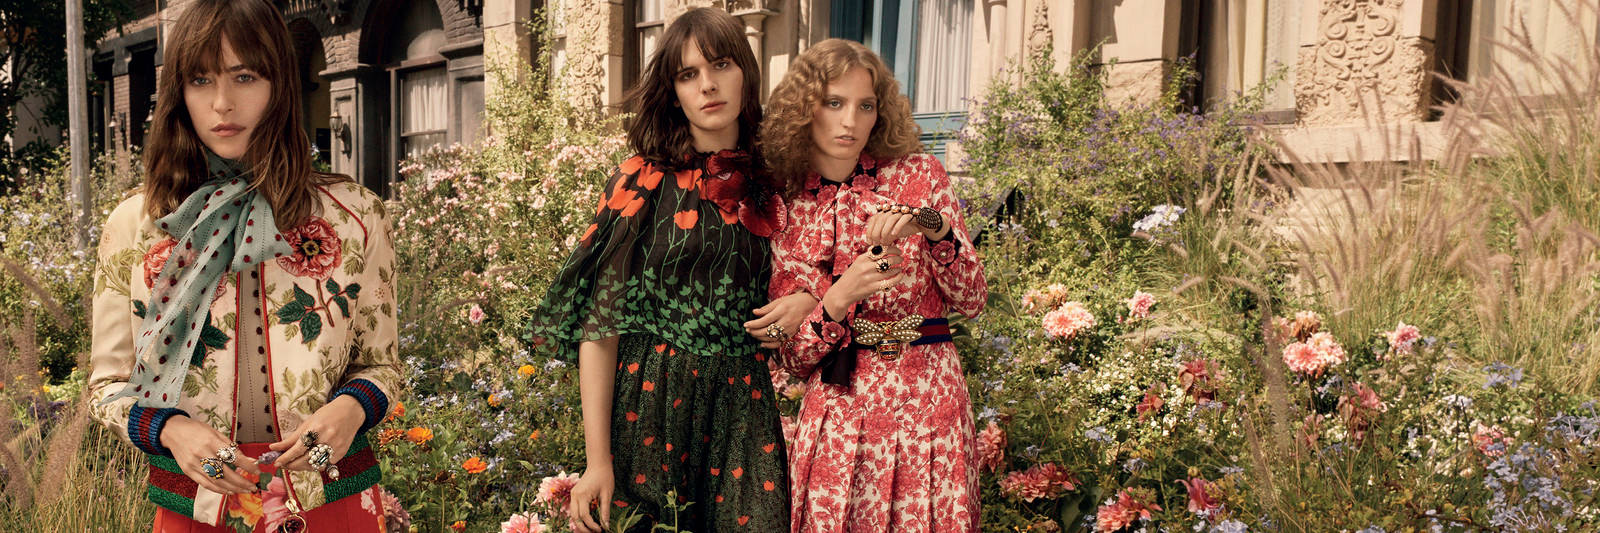 2018 Wedding Flowers 11 Ideas Found In Gucci Bloom Campaign